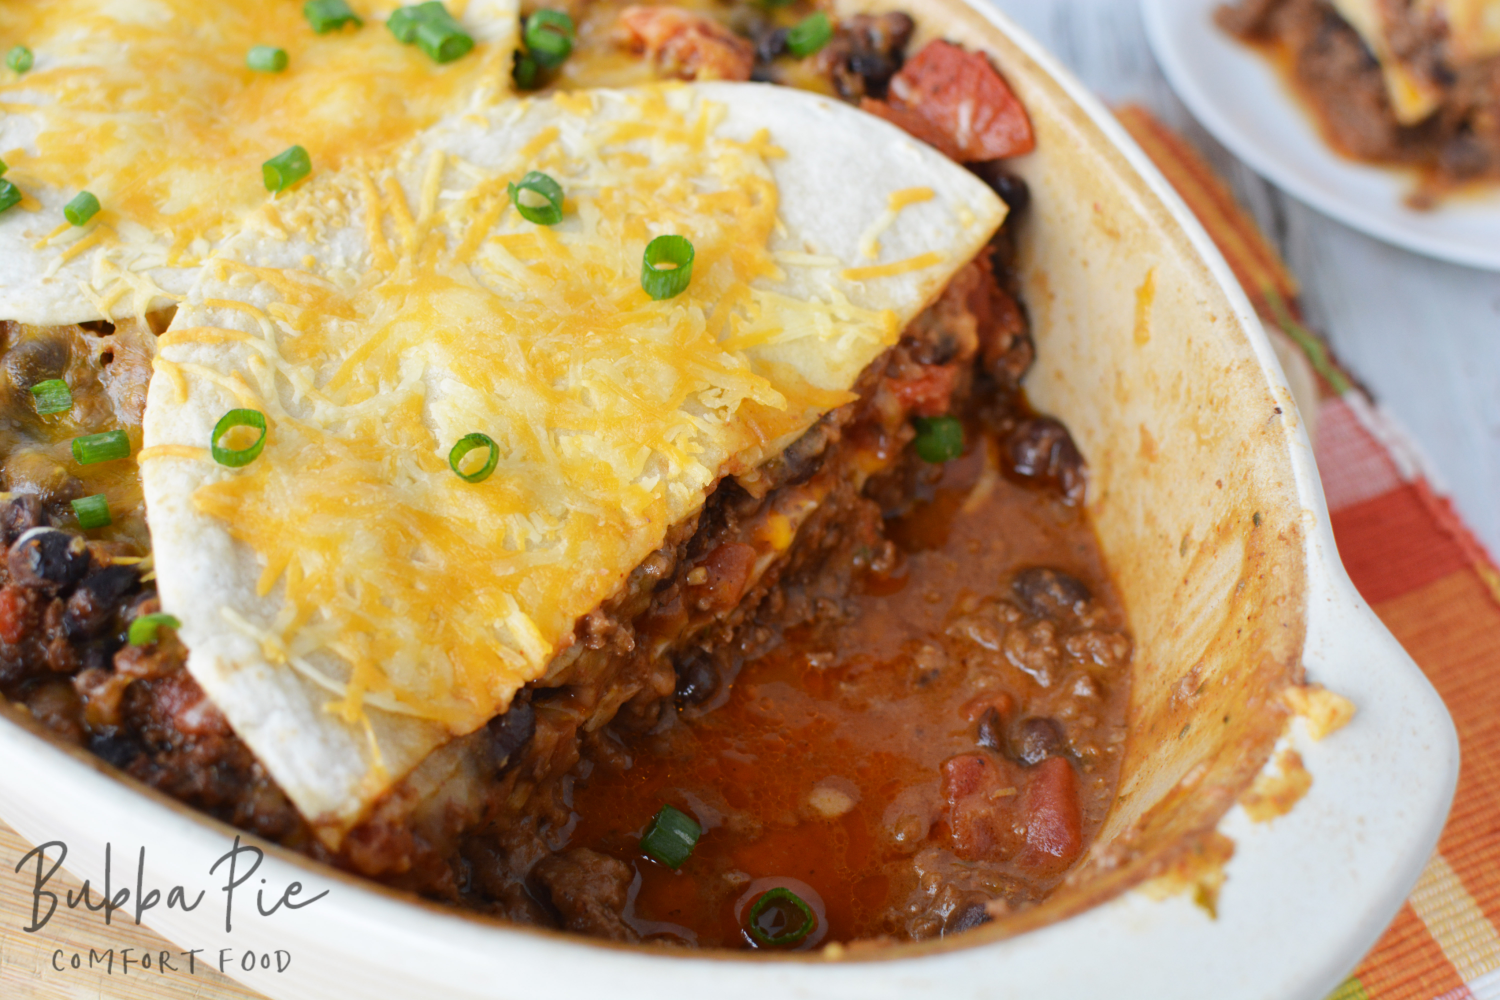 Learning How To Make Taco Lasagna was so easy. Serving it to my family was even easier!